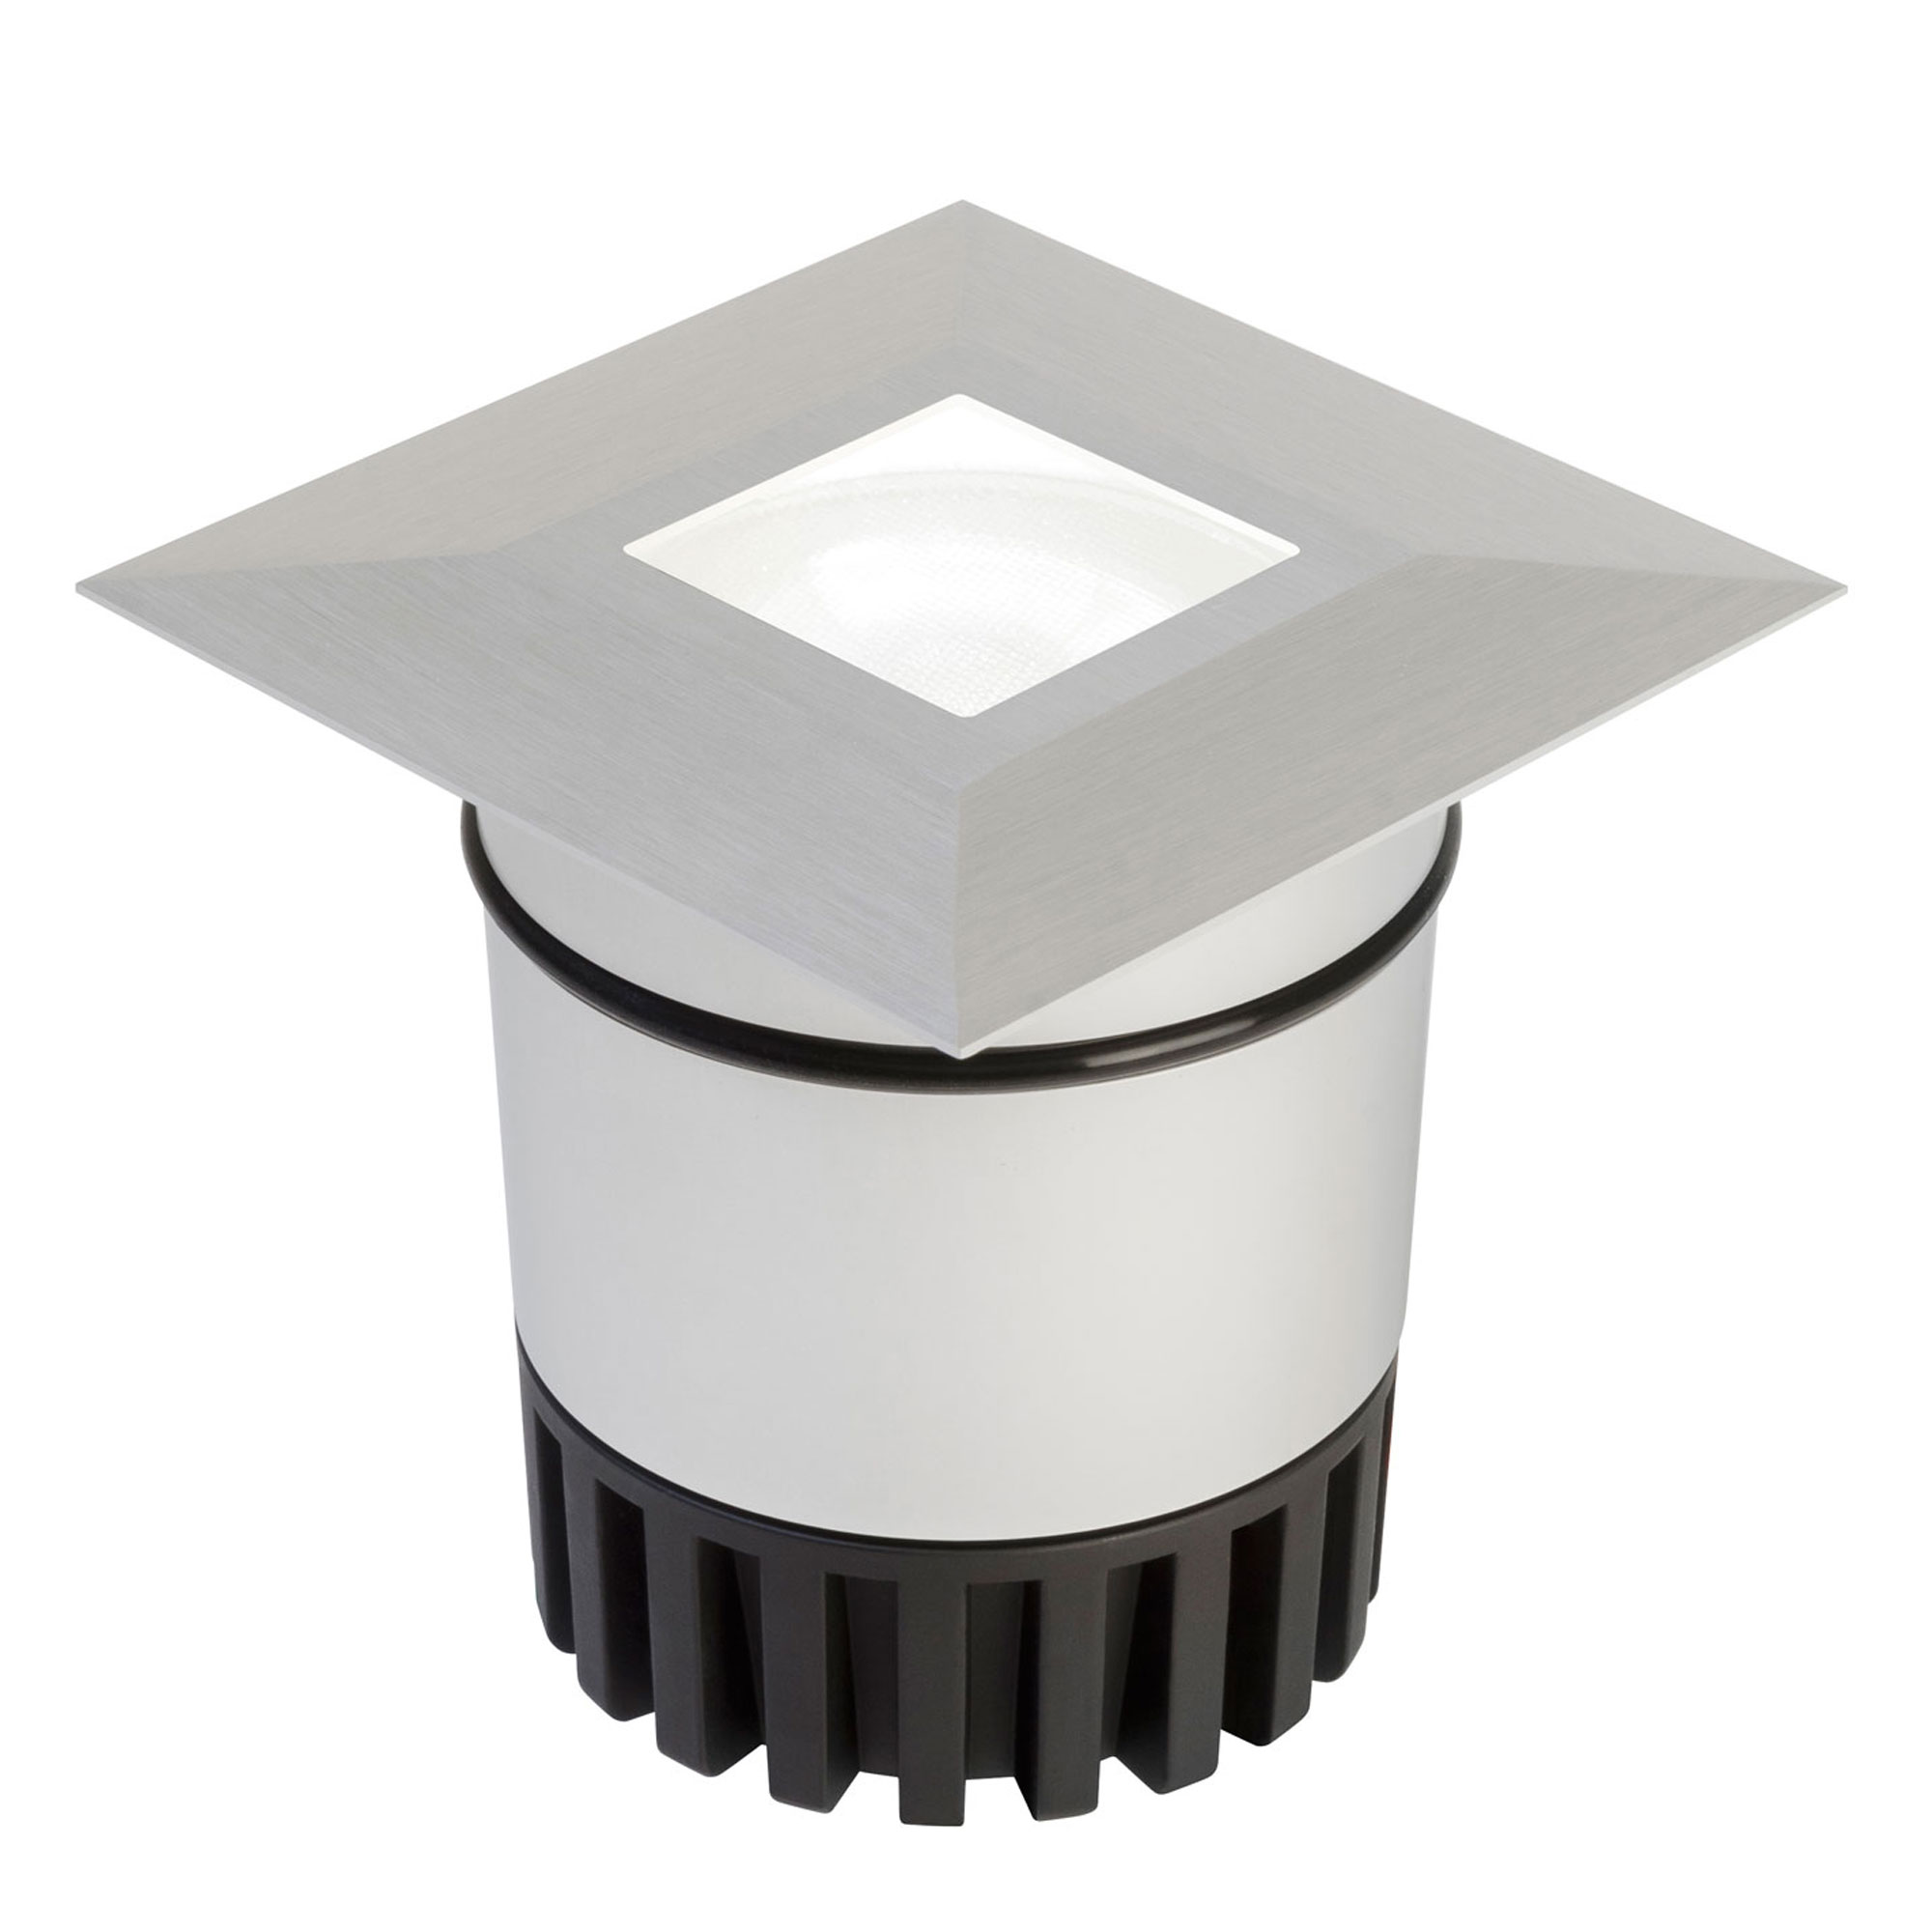 Sun3 square led recessed uplight steplight by pureedge lighting